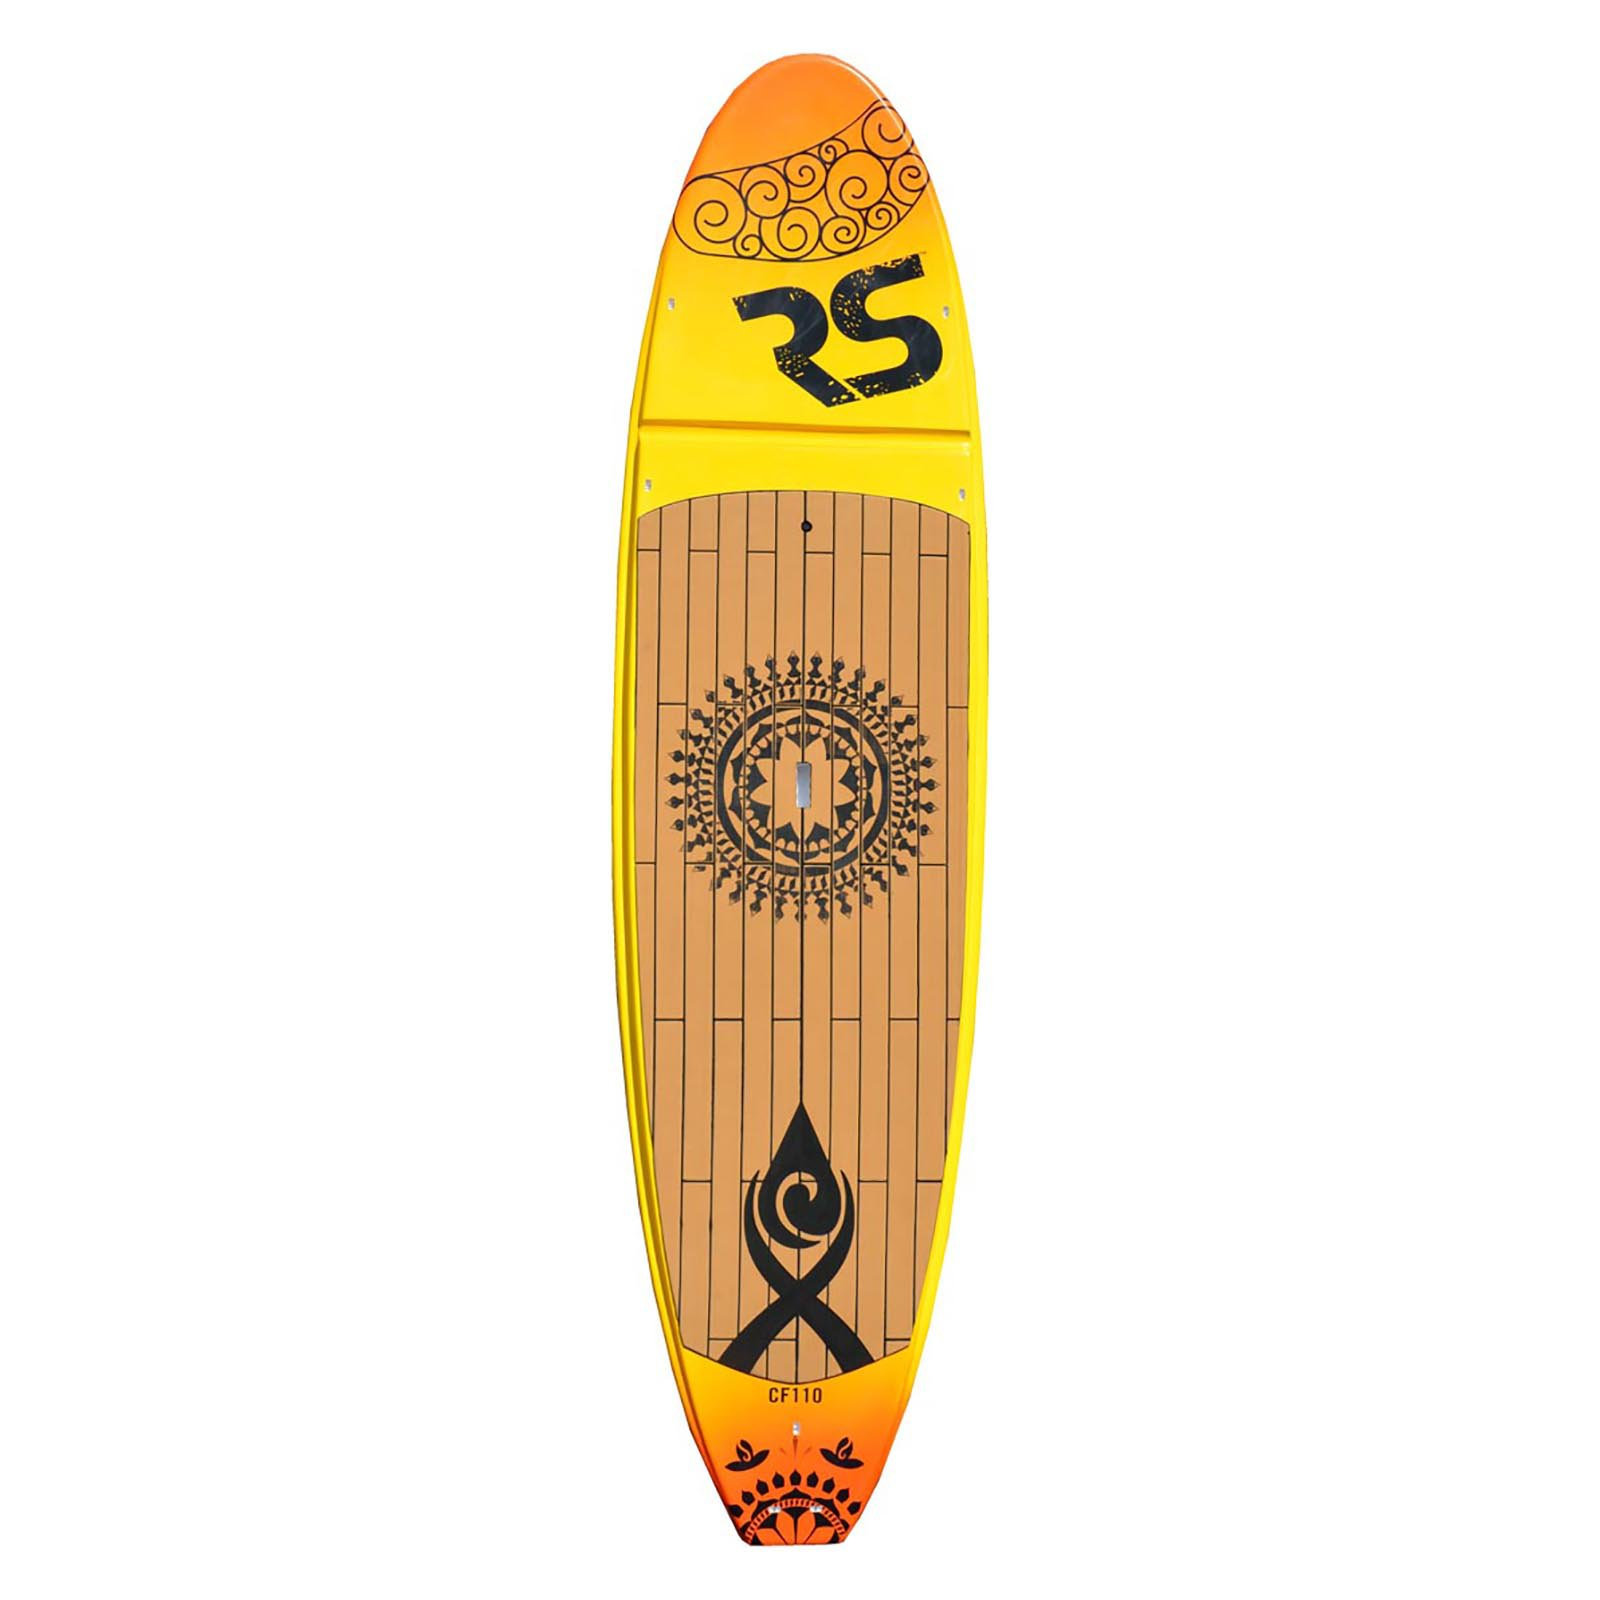 Rave Sports CrossFit and Yoga 11 ft. Stand Up Paddle Board by RAVE